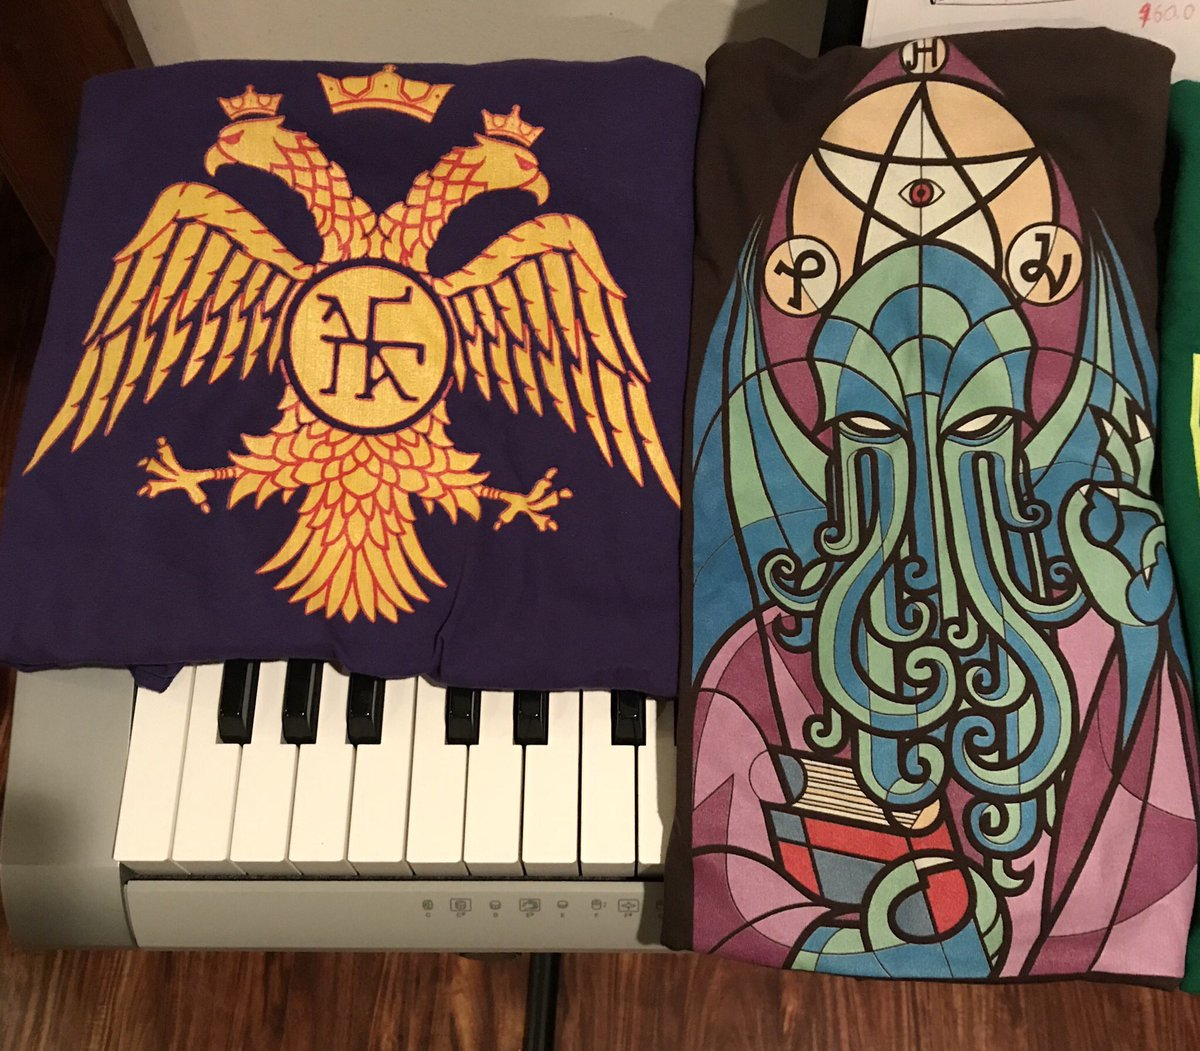 T-shirt Cthulhu stained glass